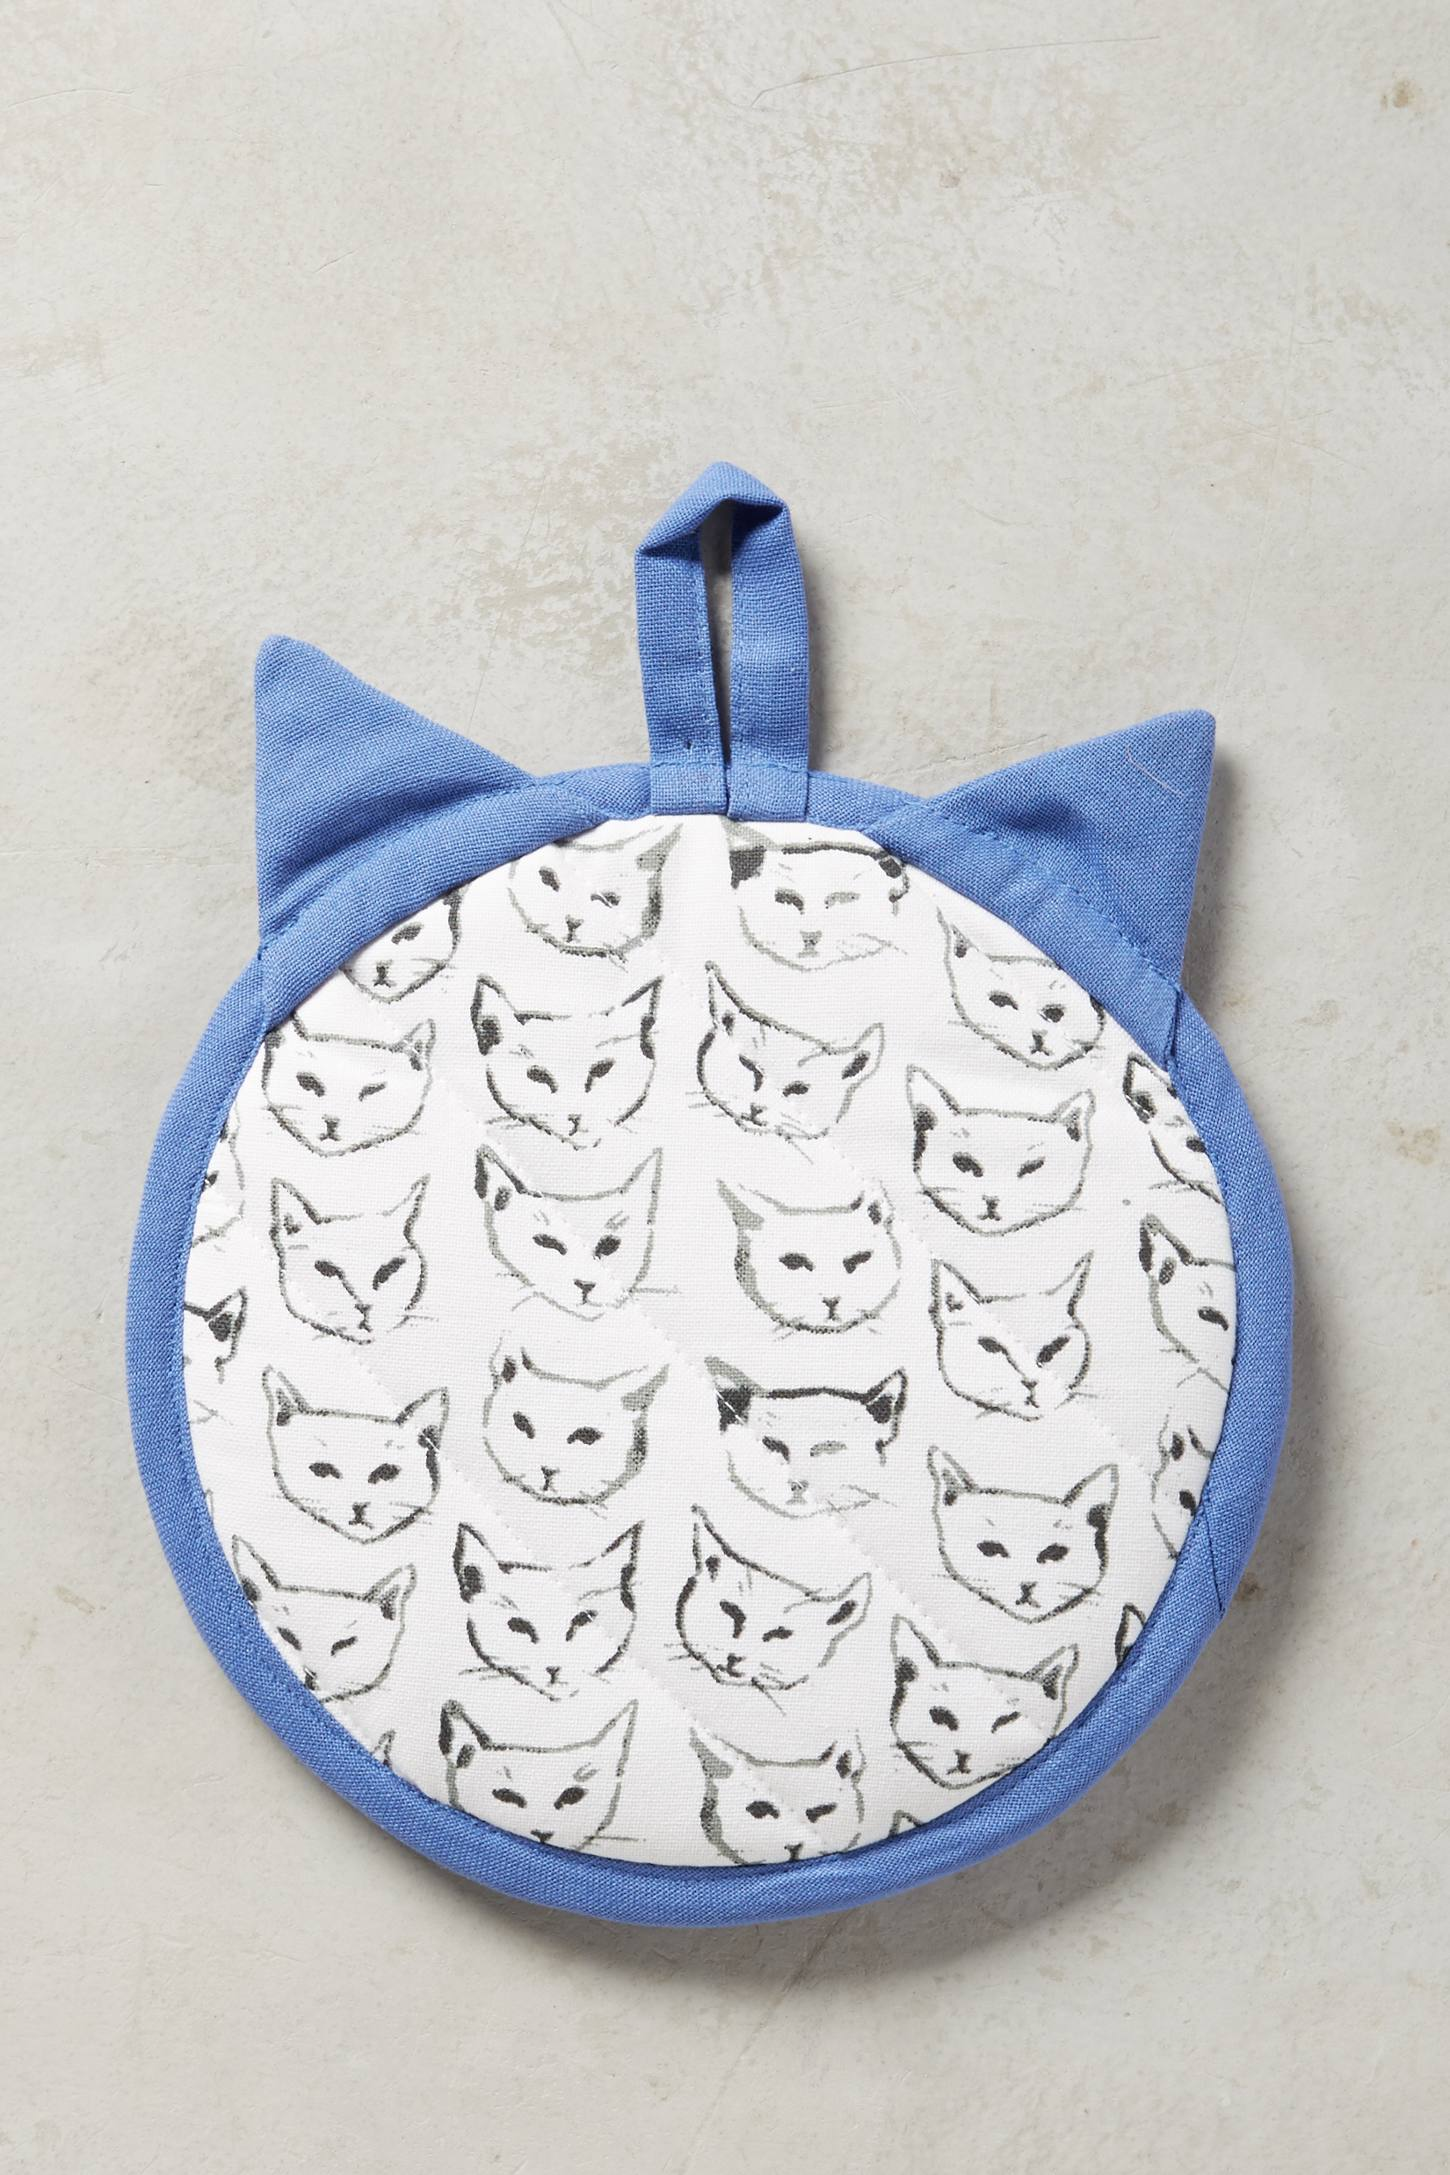 Slide View: 4: Cat Study Pot Holder